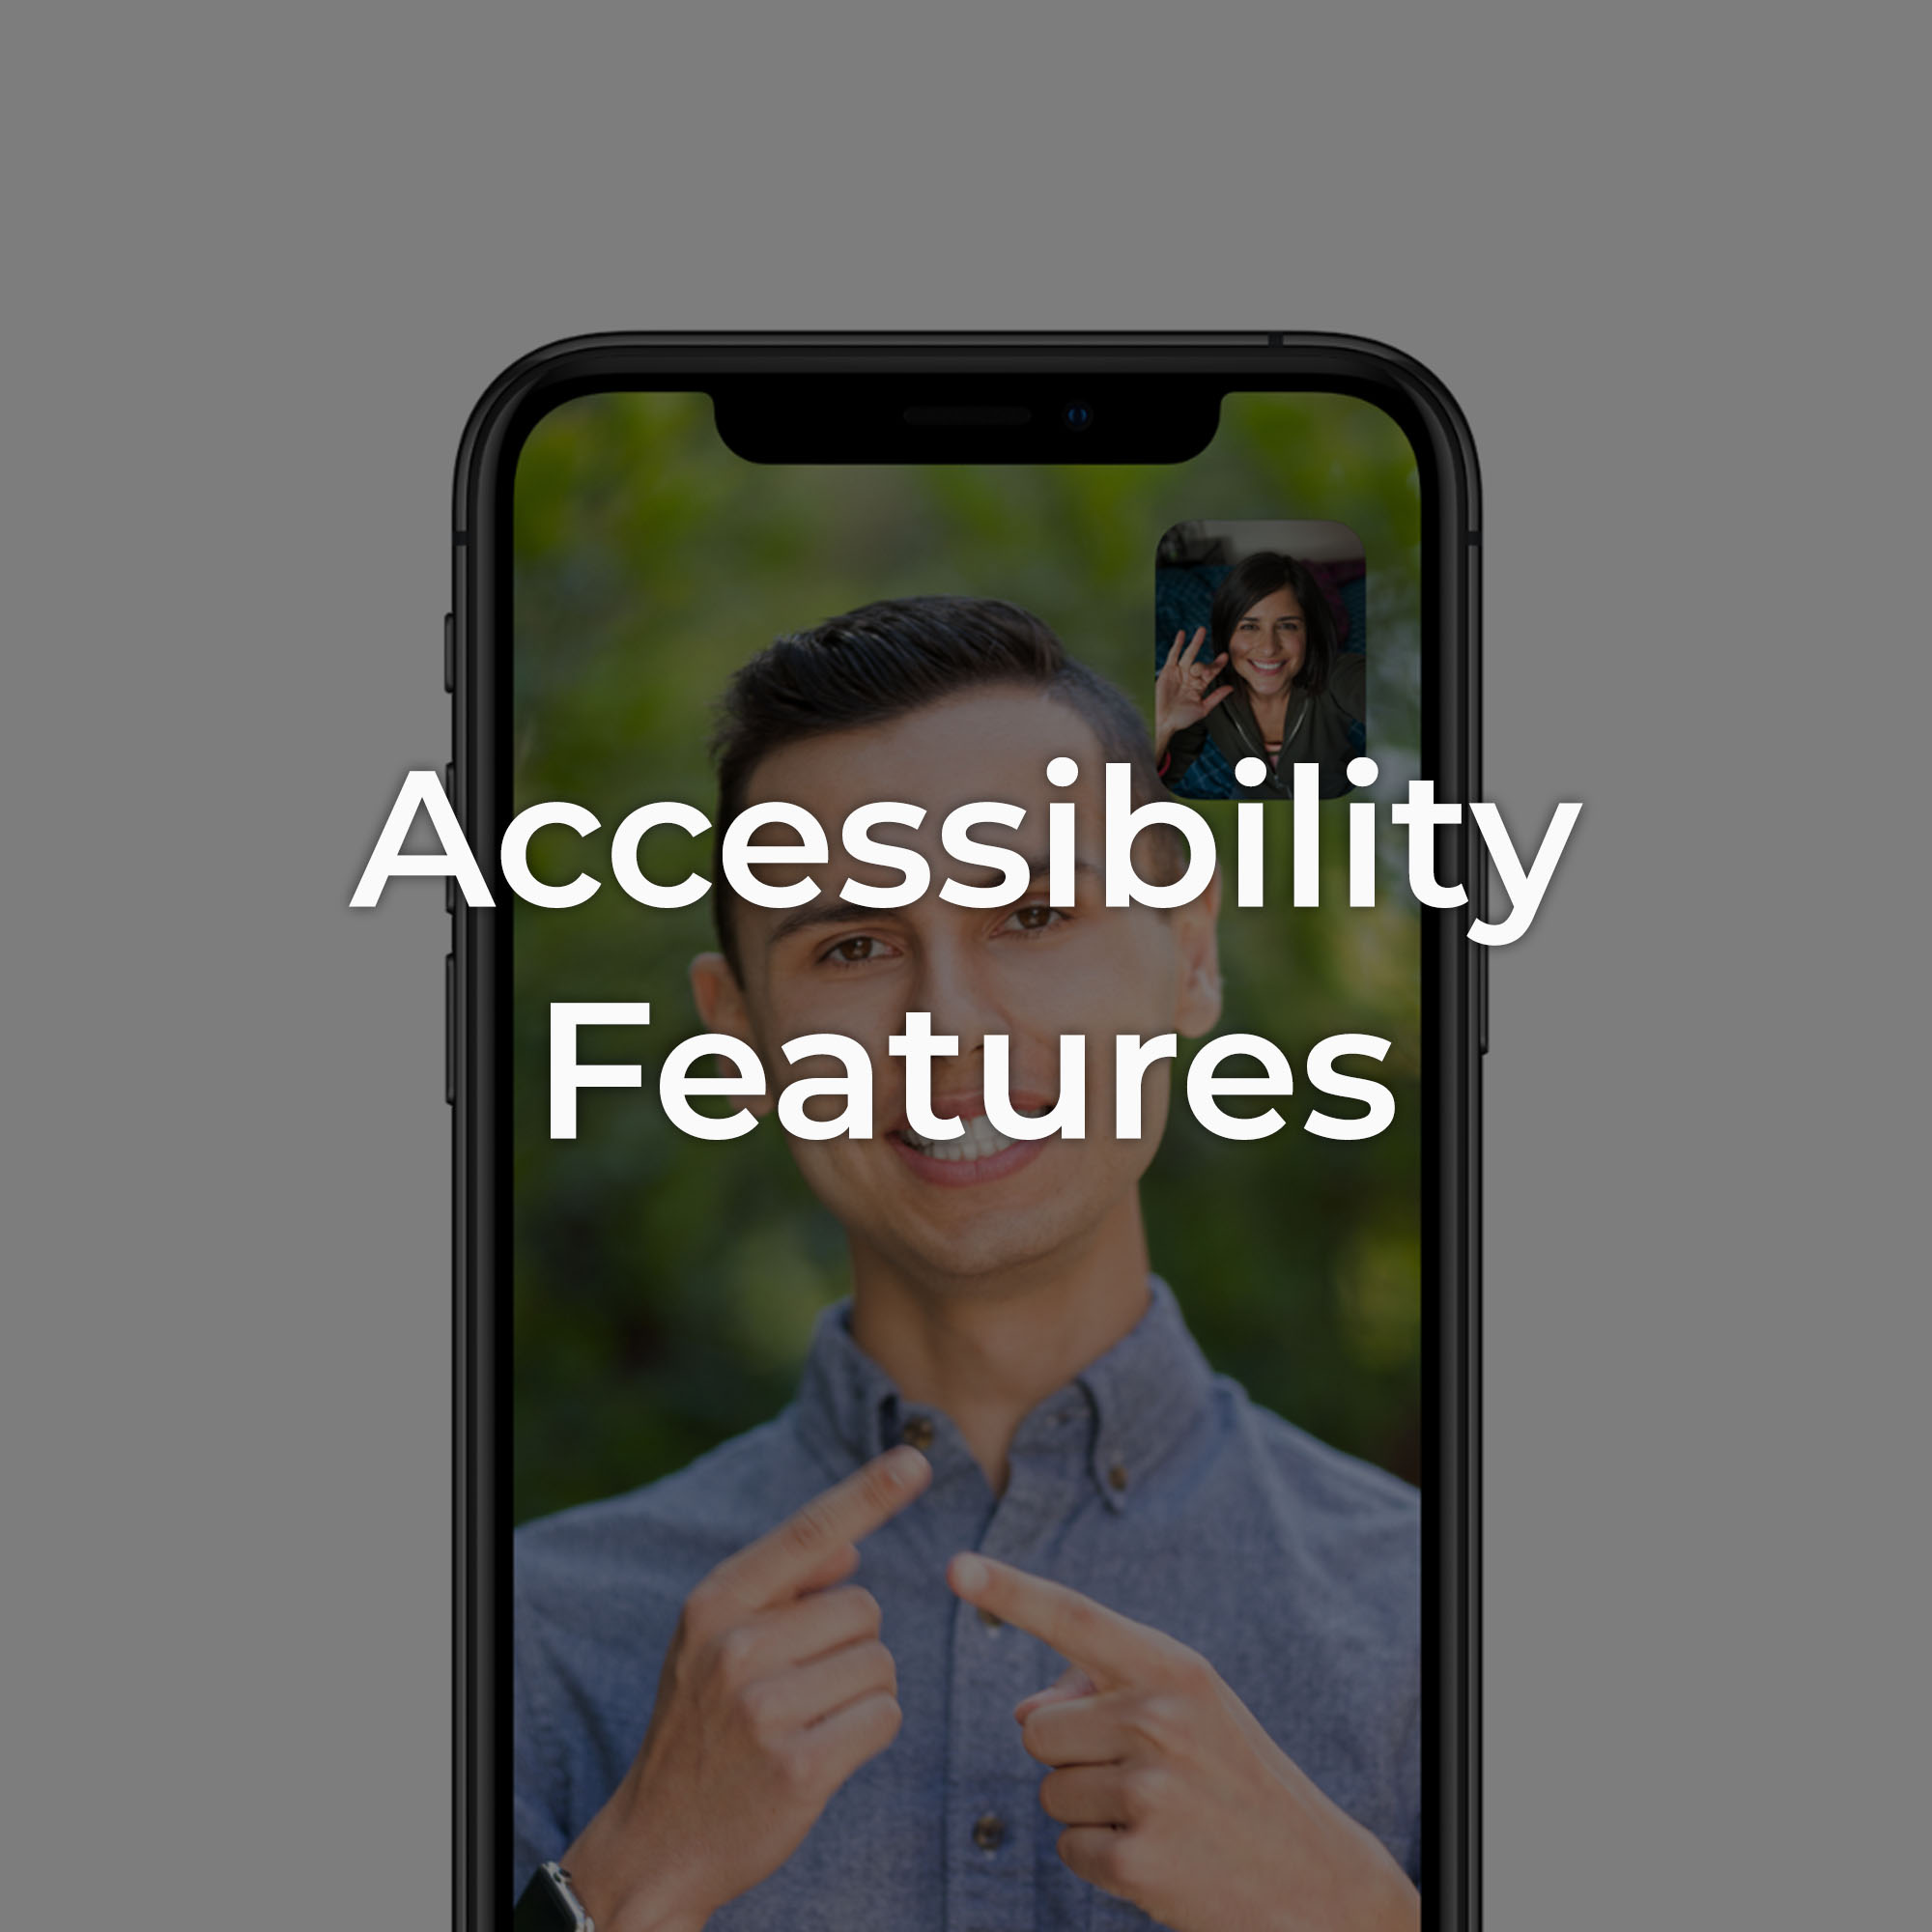 09 Accessibility Features.jpg